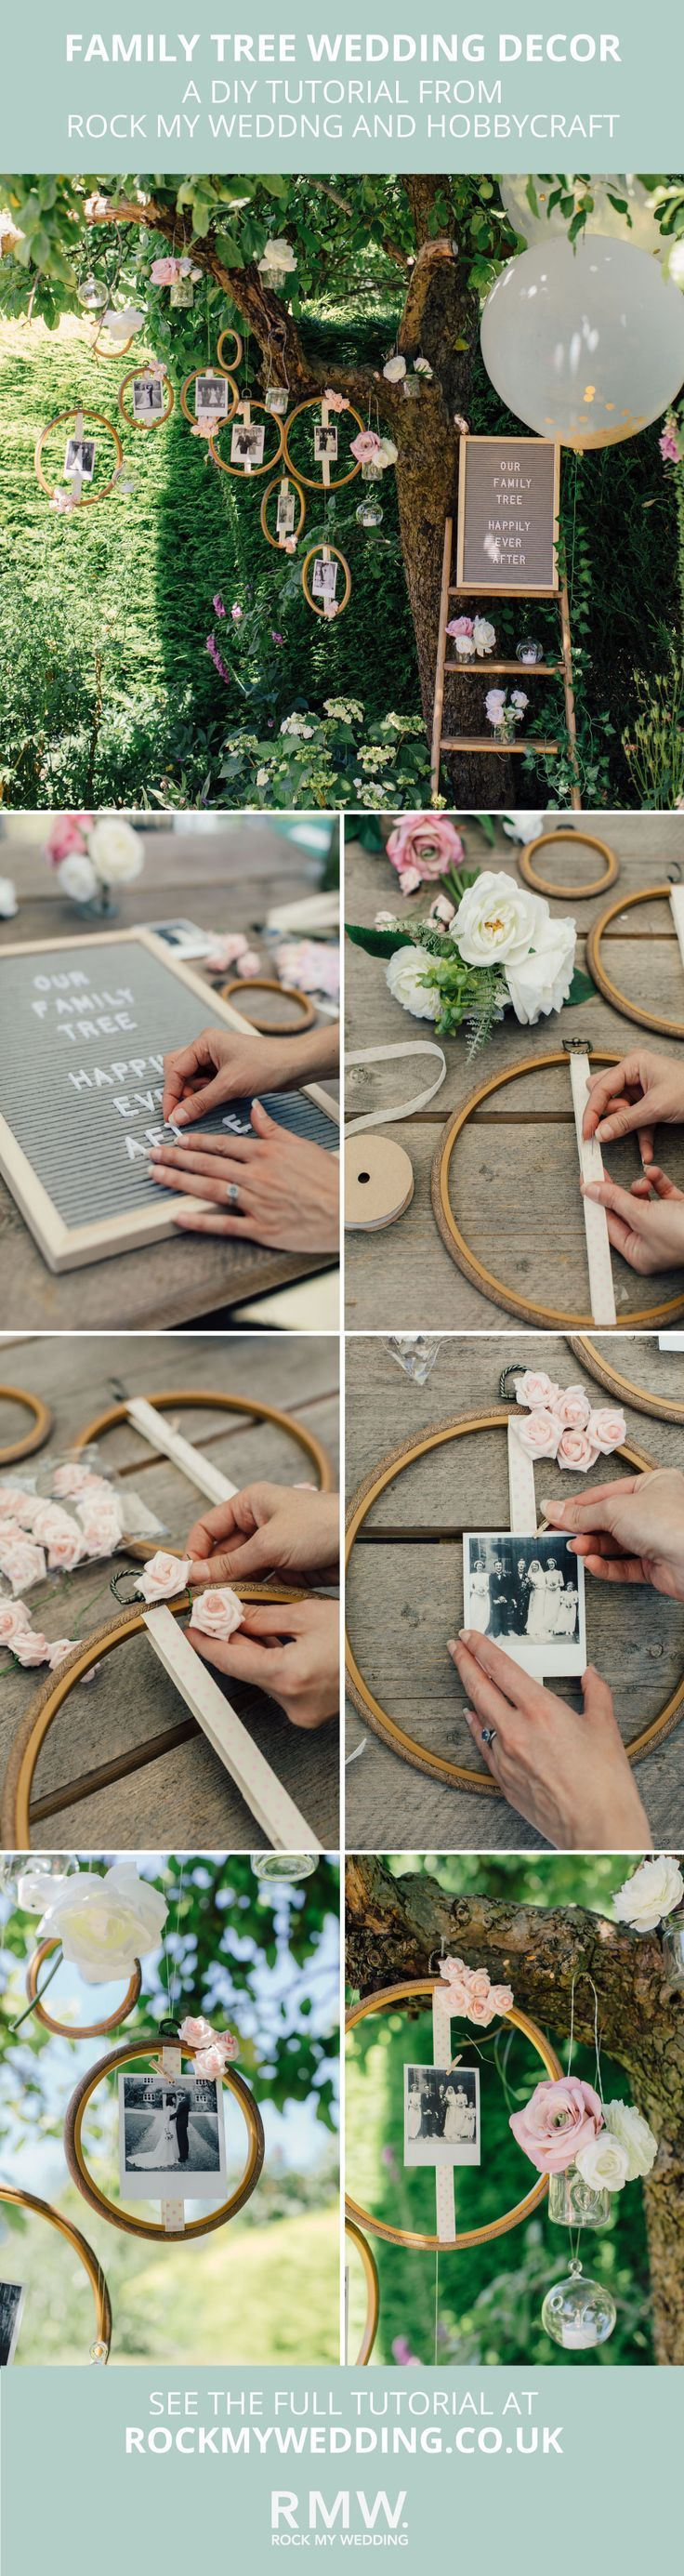 DIY Embroidery Hoop Wedding Photo Family Tree Tutorial